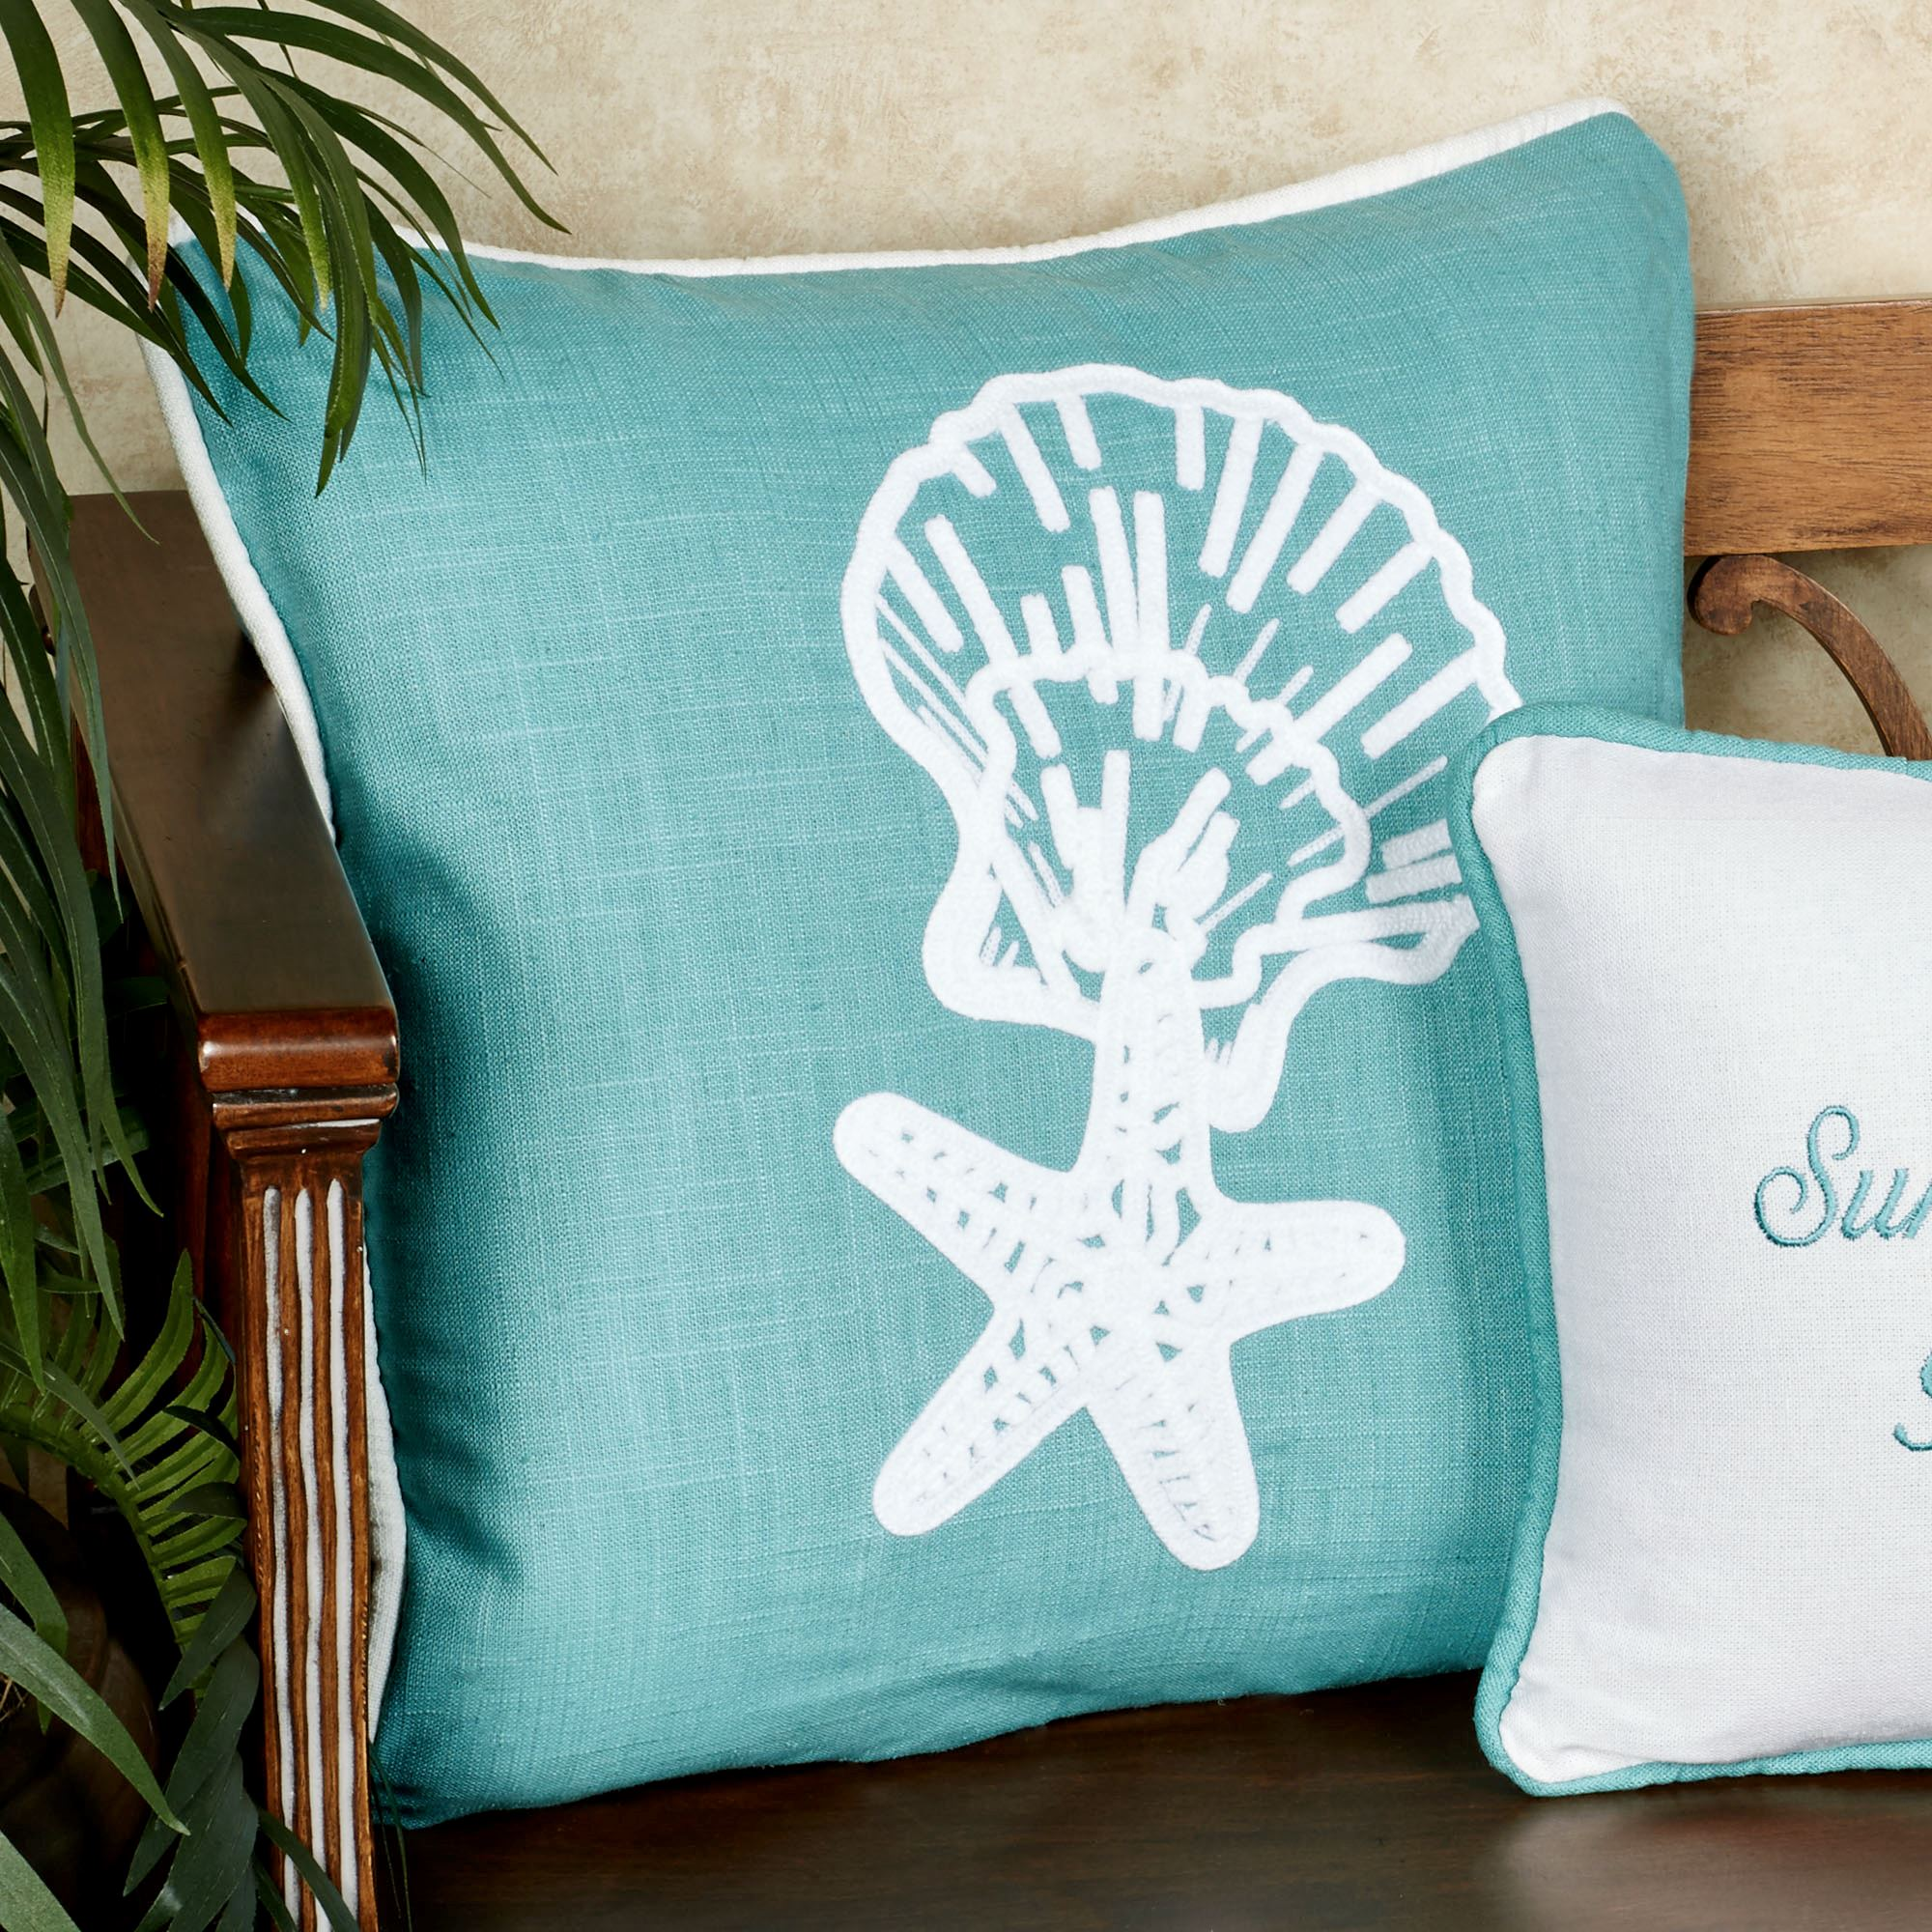 stitches turq outside pillow diy beach doodles pillows